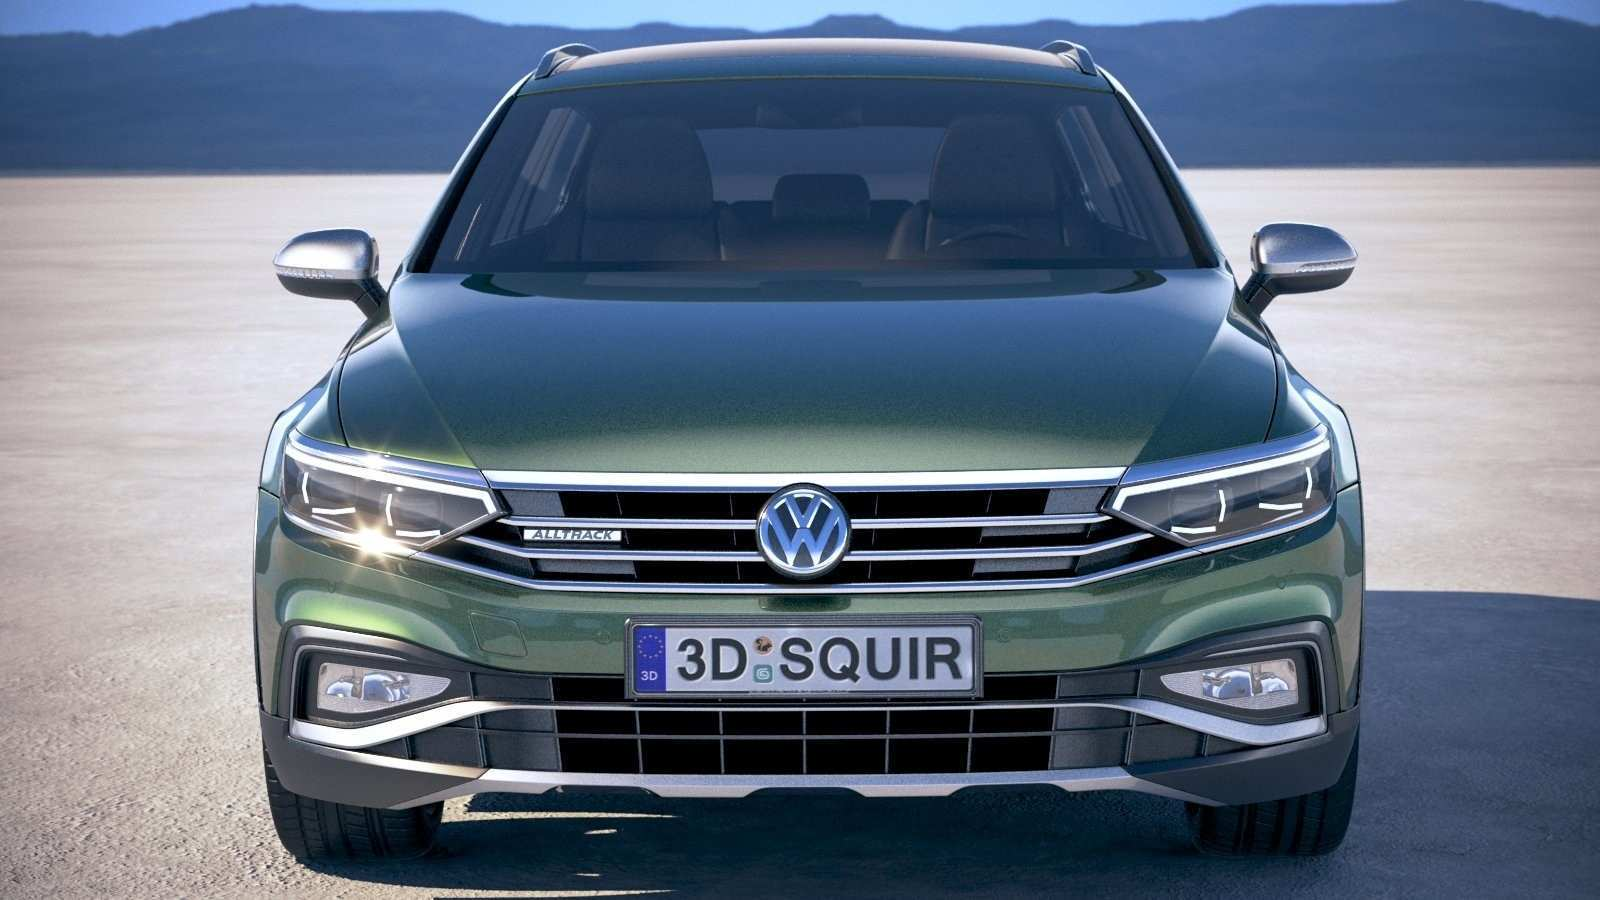 50 All New Volkswagen Passat Alltrack 2020 Prices for Volkswagen Passat Alltrack 2020